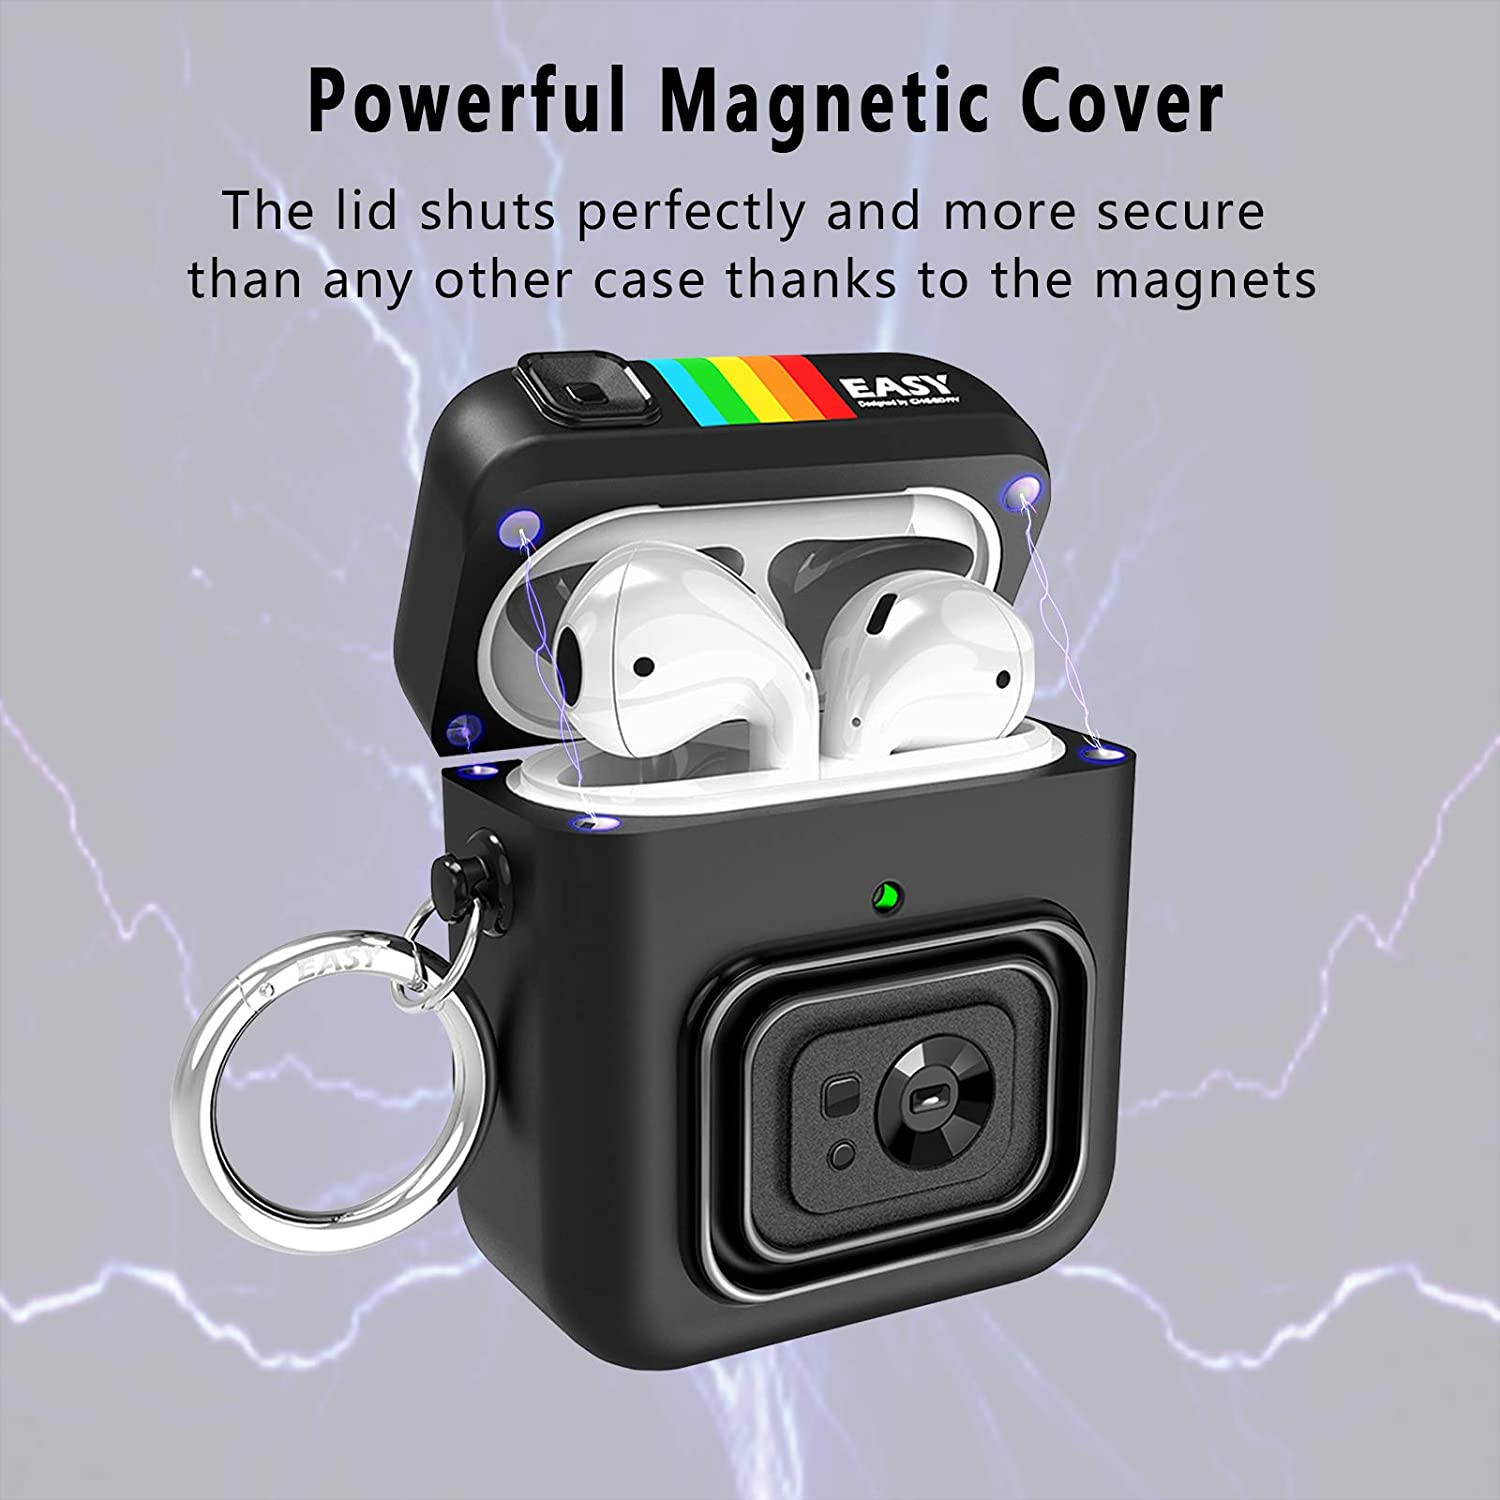 Magnetic Cover for Airpods Pro Case Cute Cartoon Camera Design with Keychain Silicone Rugged ArmorFull-Body for AirPods 1 2 Case enlarge